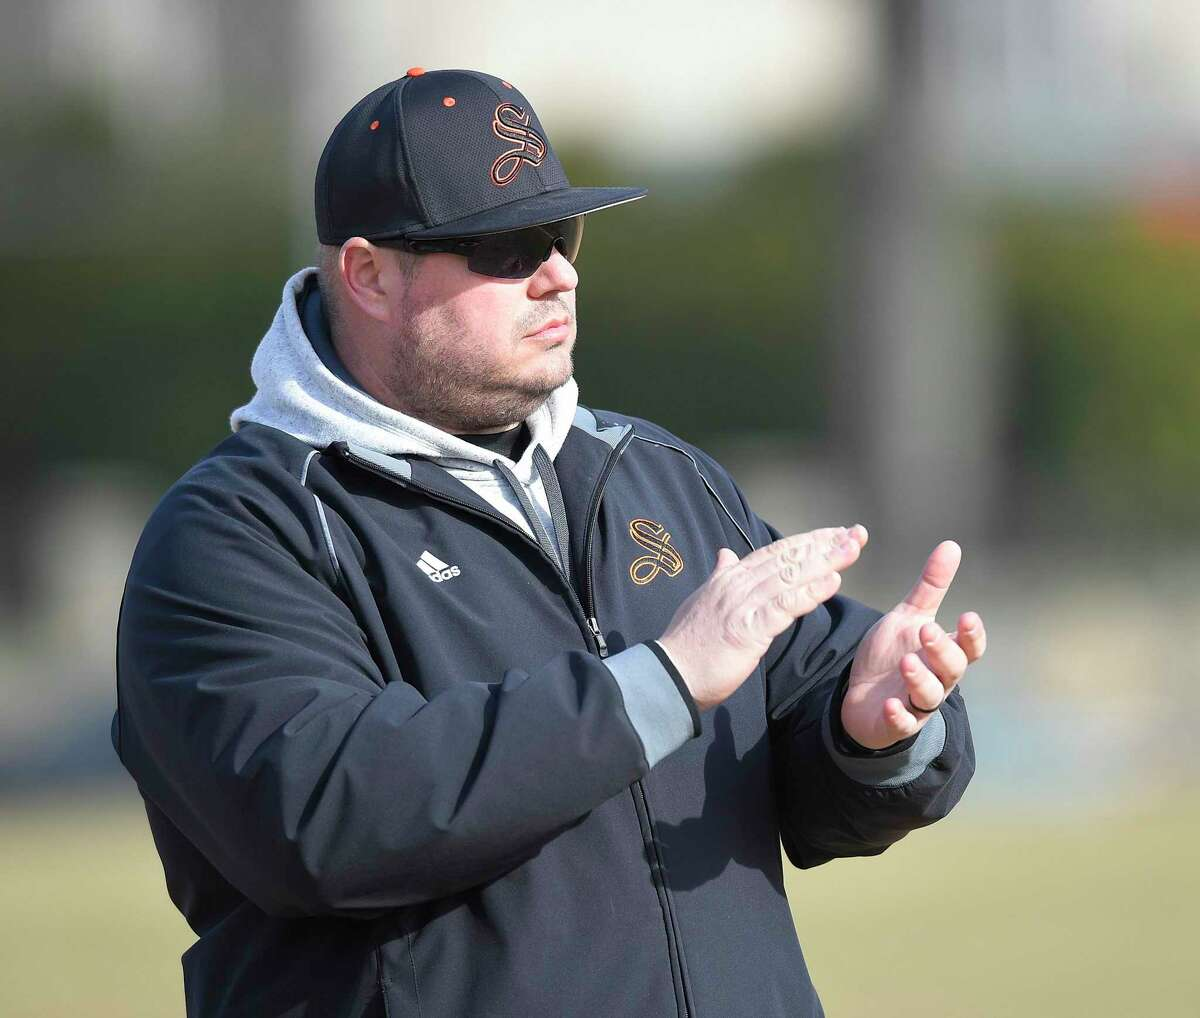 Stamford High School baseball coach Rit Lacomis applauds the action of his players in the first inning of a scrimmage baseball game against Greenwich, Thursday, March 28, 2019 in Stamford, Connecticut.